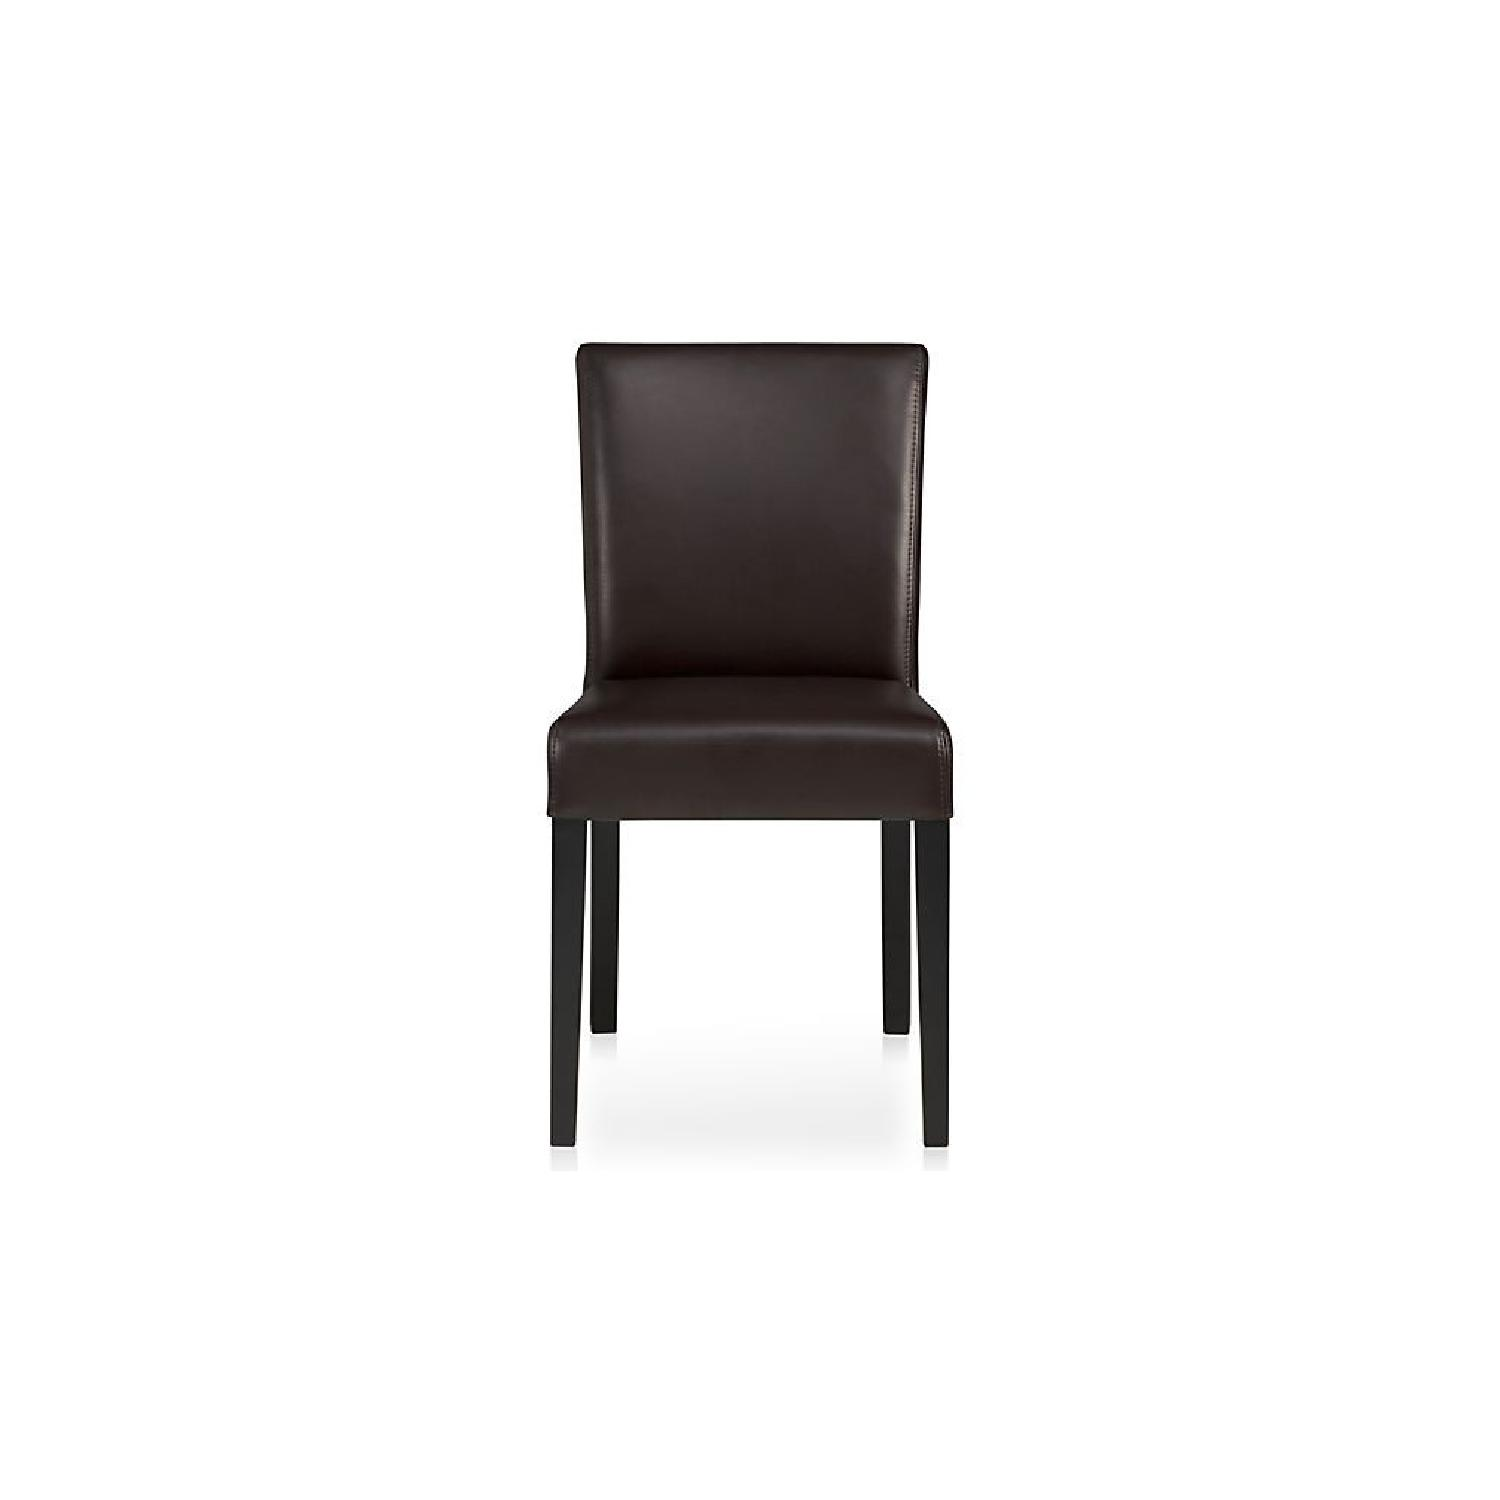 Crate & Barrel Lowe Chocolate Leather Dining Chairs